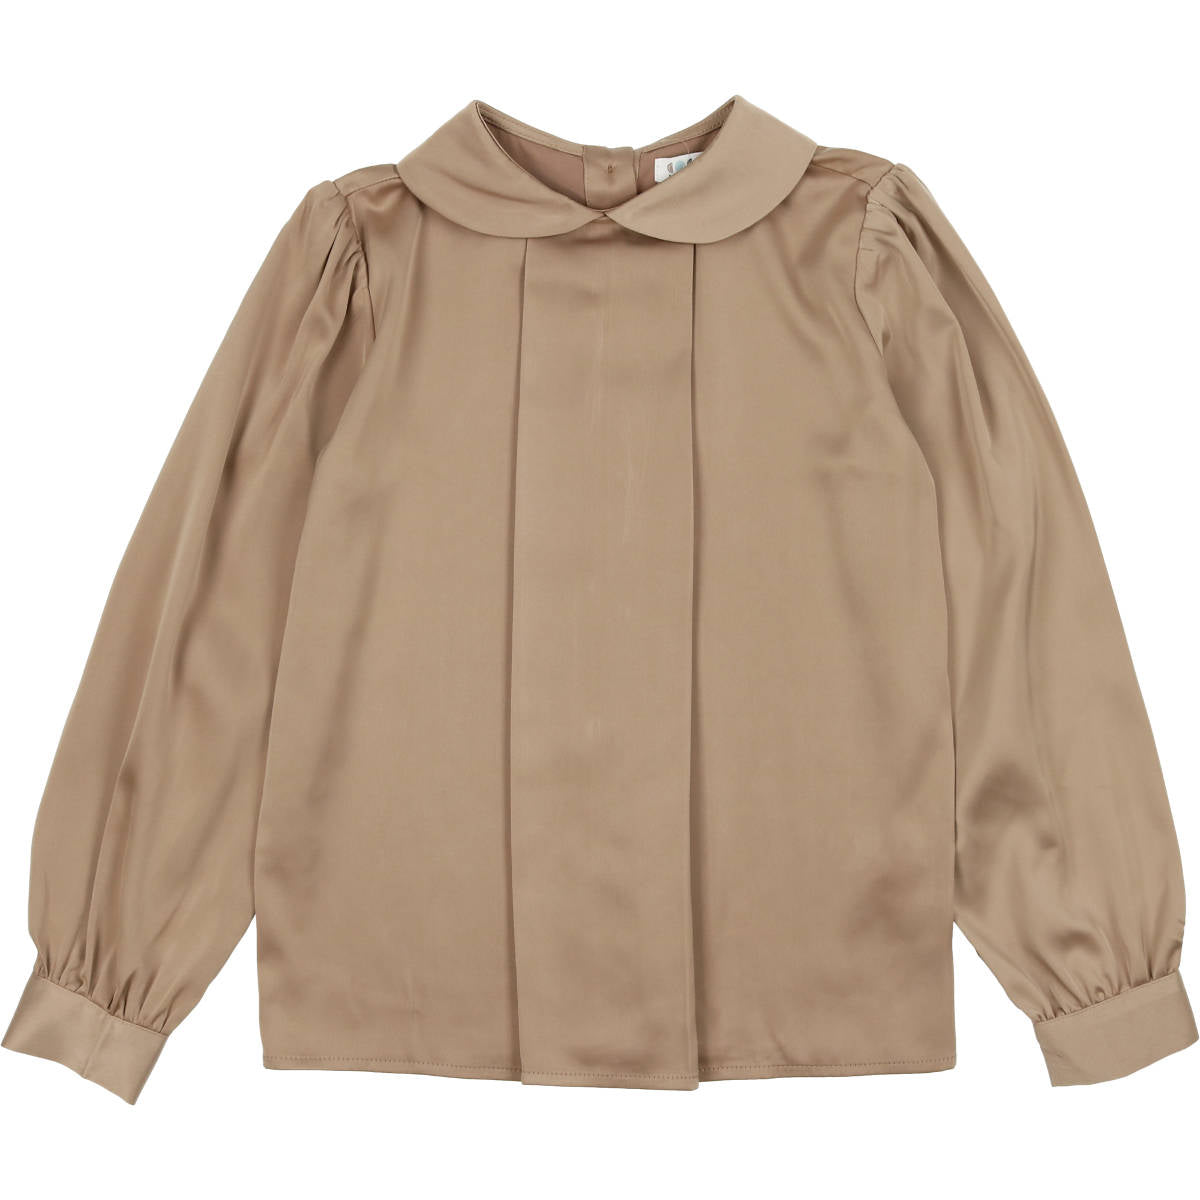 Coco Blanc Toffee Silky Blouse